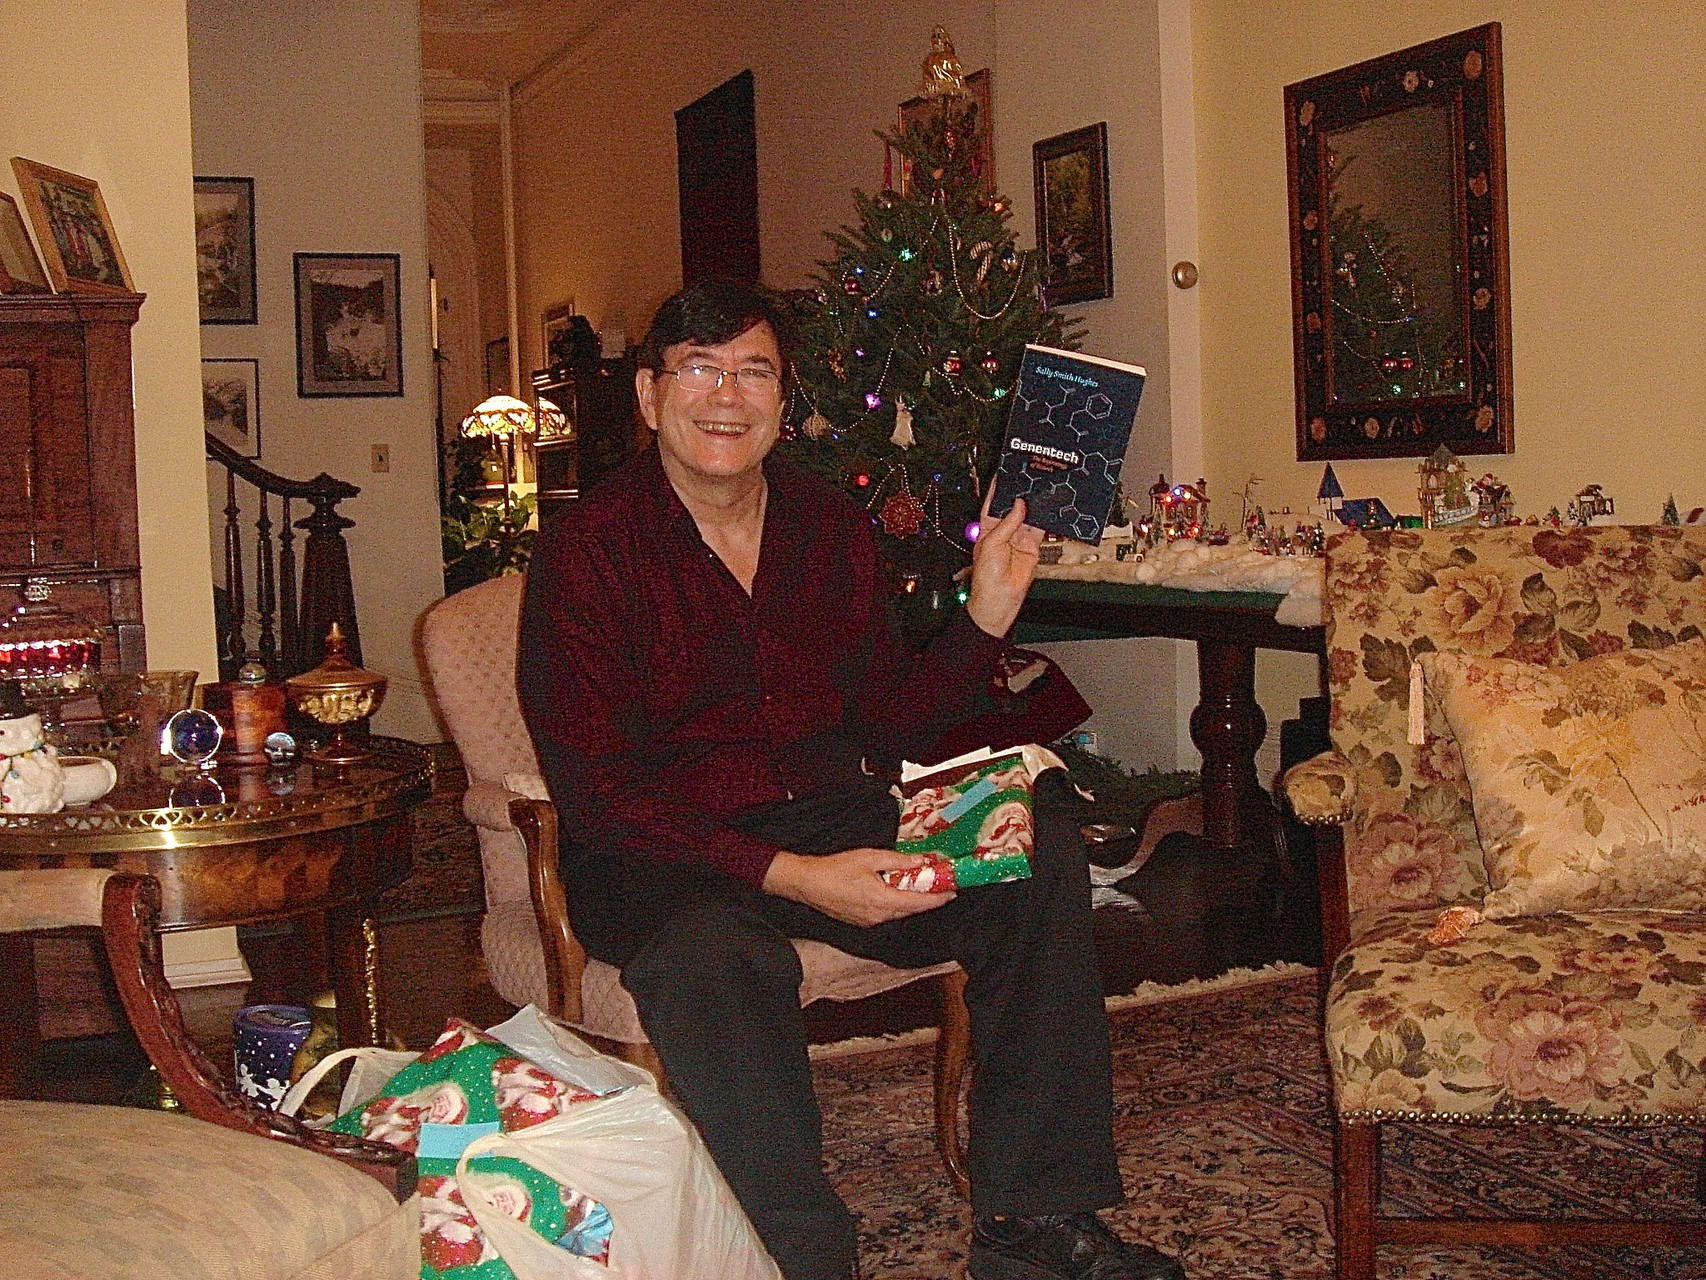 John opening gifts on Xmas Day in NYC